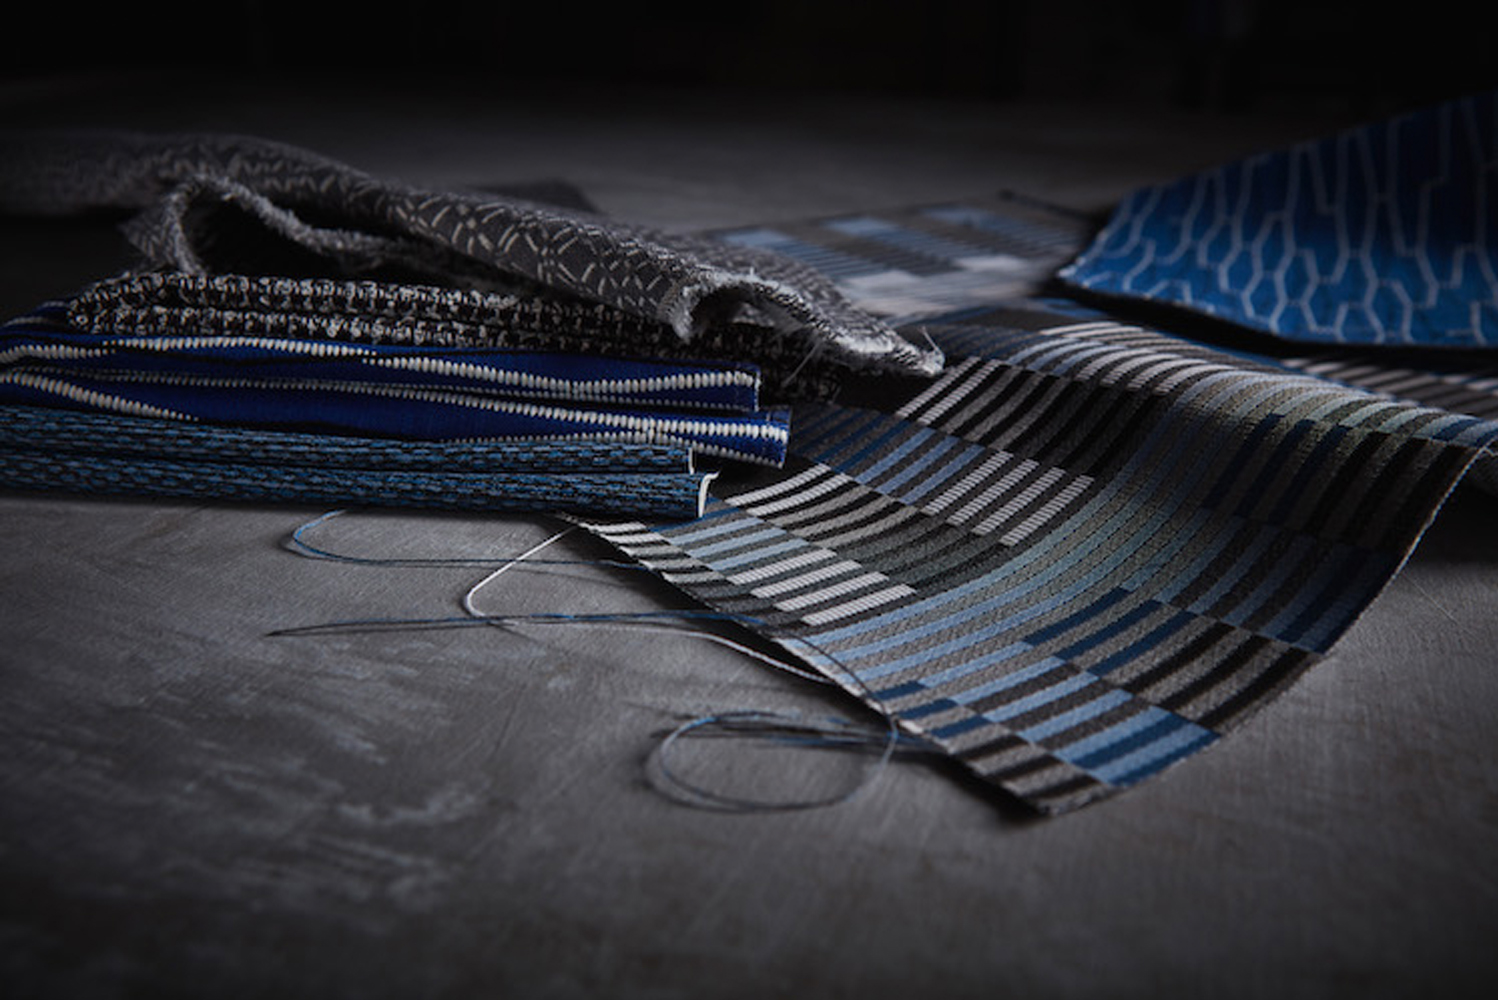 Providing a new spin on conventional plaids, the collection is available in a range of dark colors and patterns that can be mixed and matched.